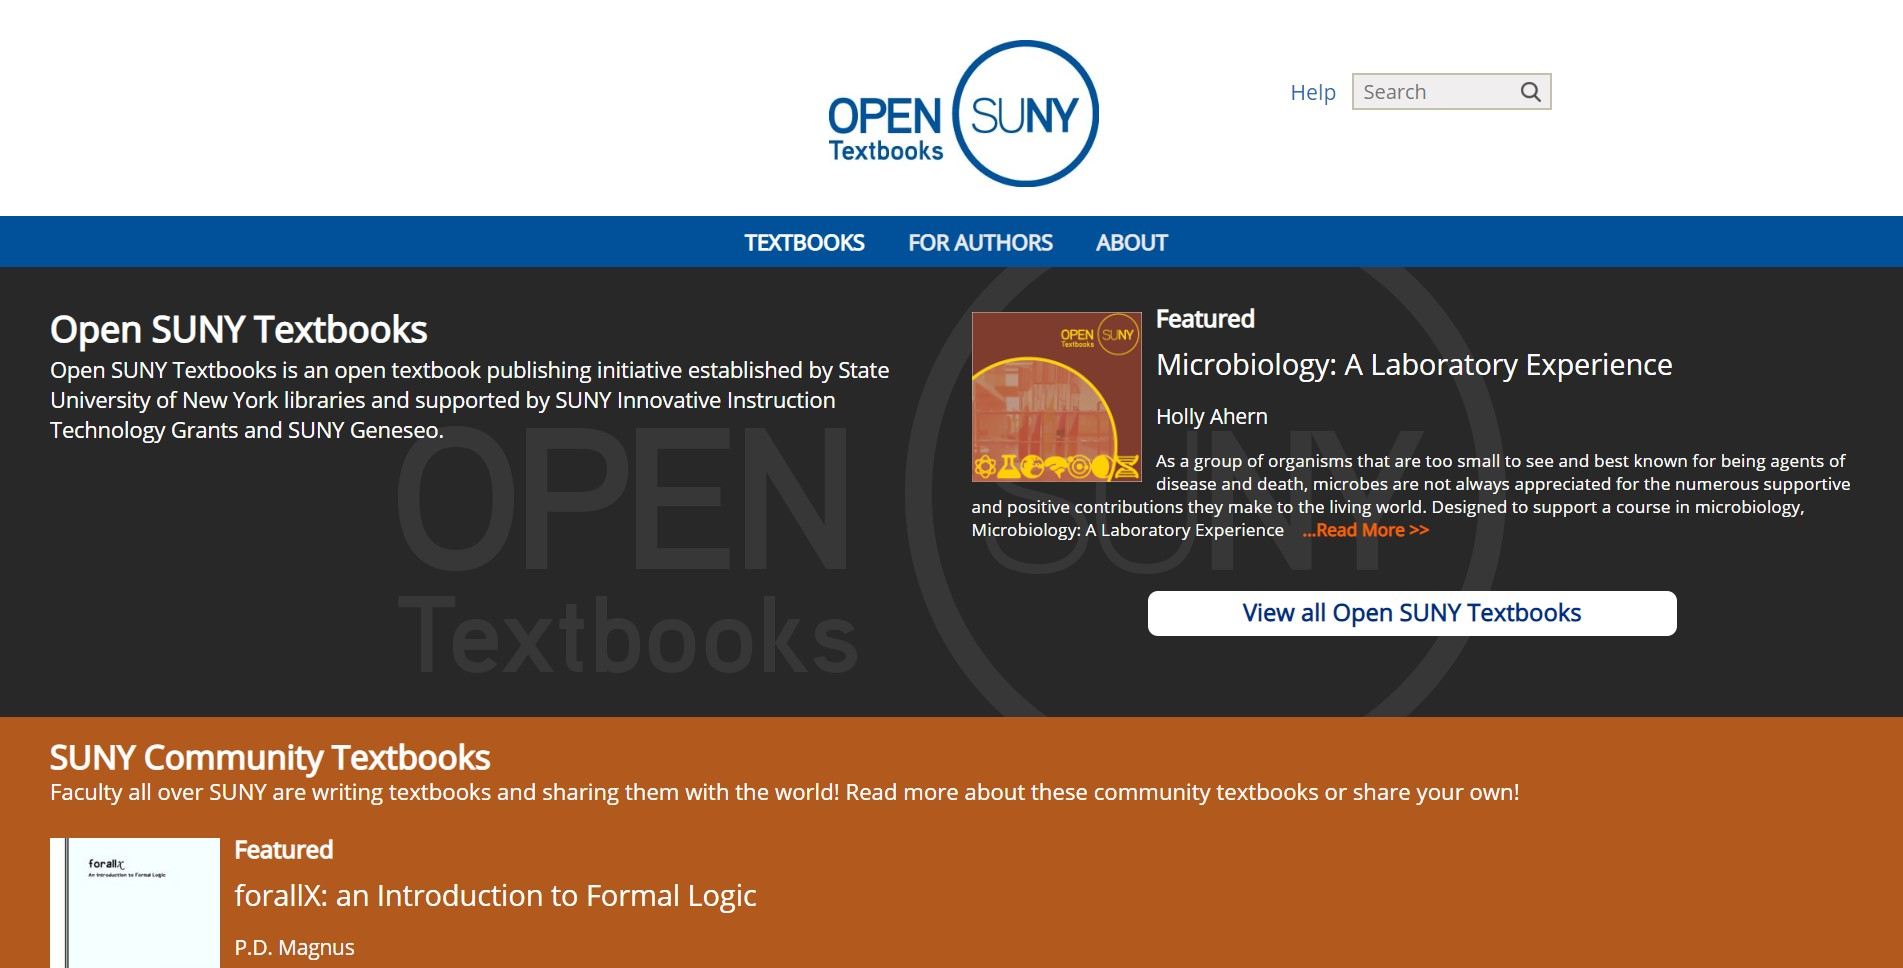 opensuny free college textbooks download website